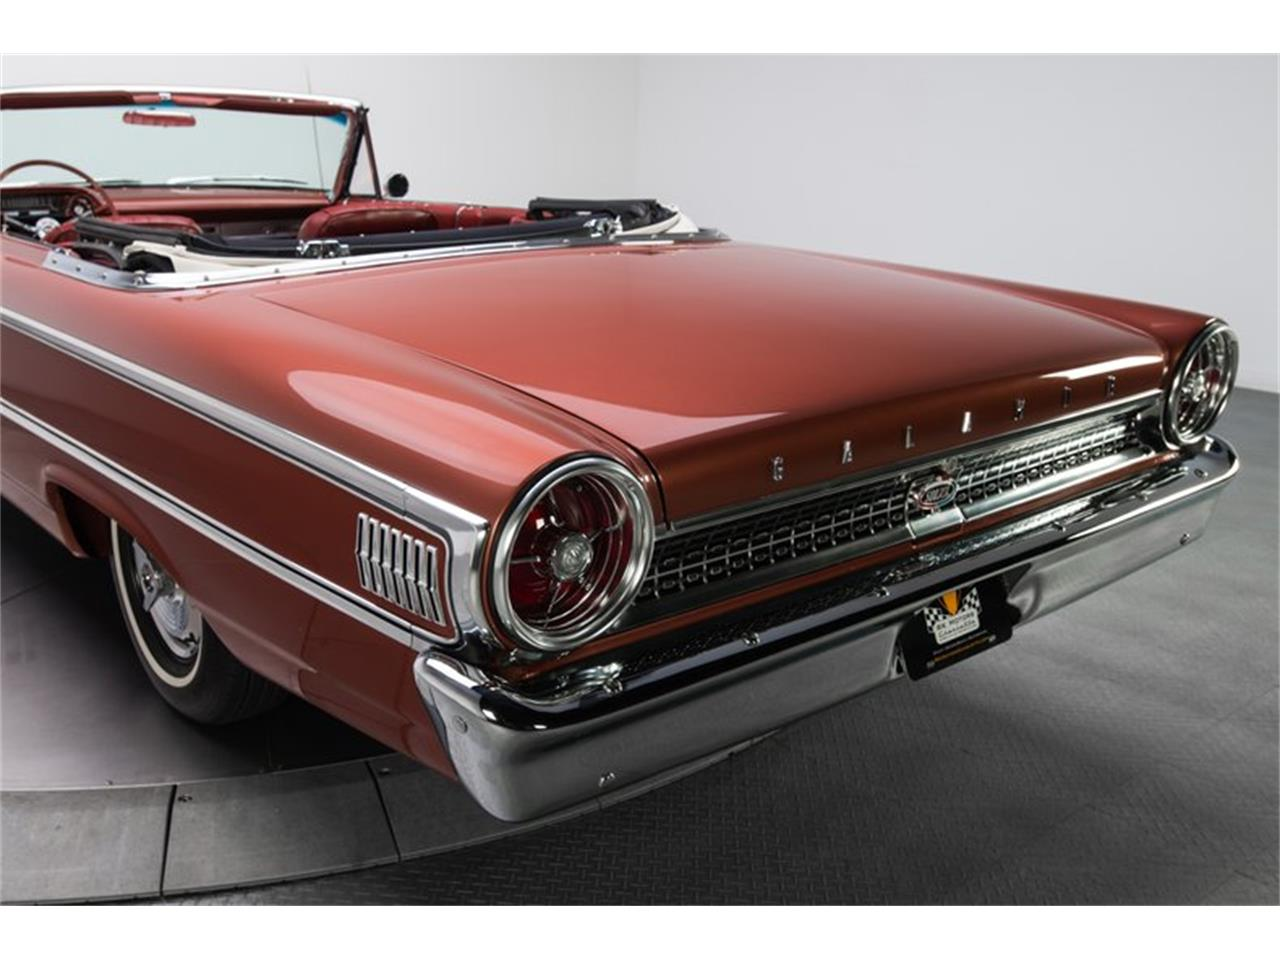 Large Picture of '63 Ford Galaxie 500 XL located in North Carolina - $75,900.00 - EXEW